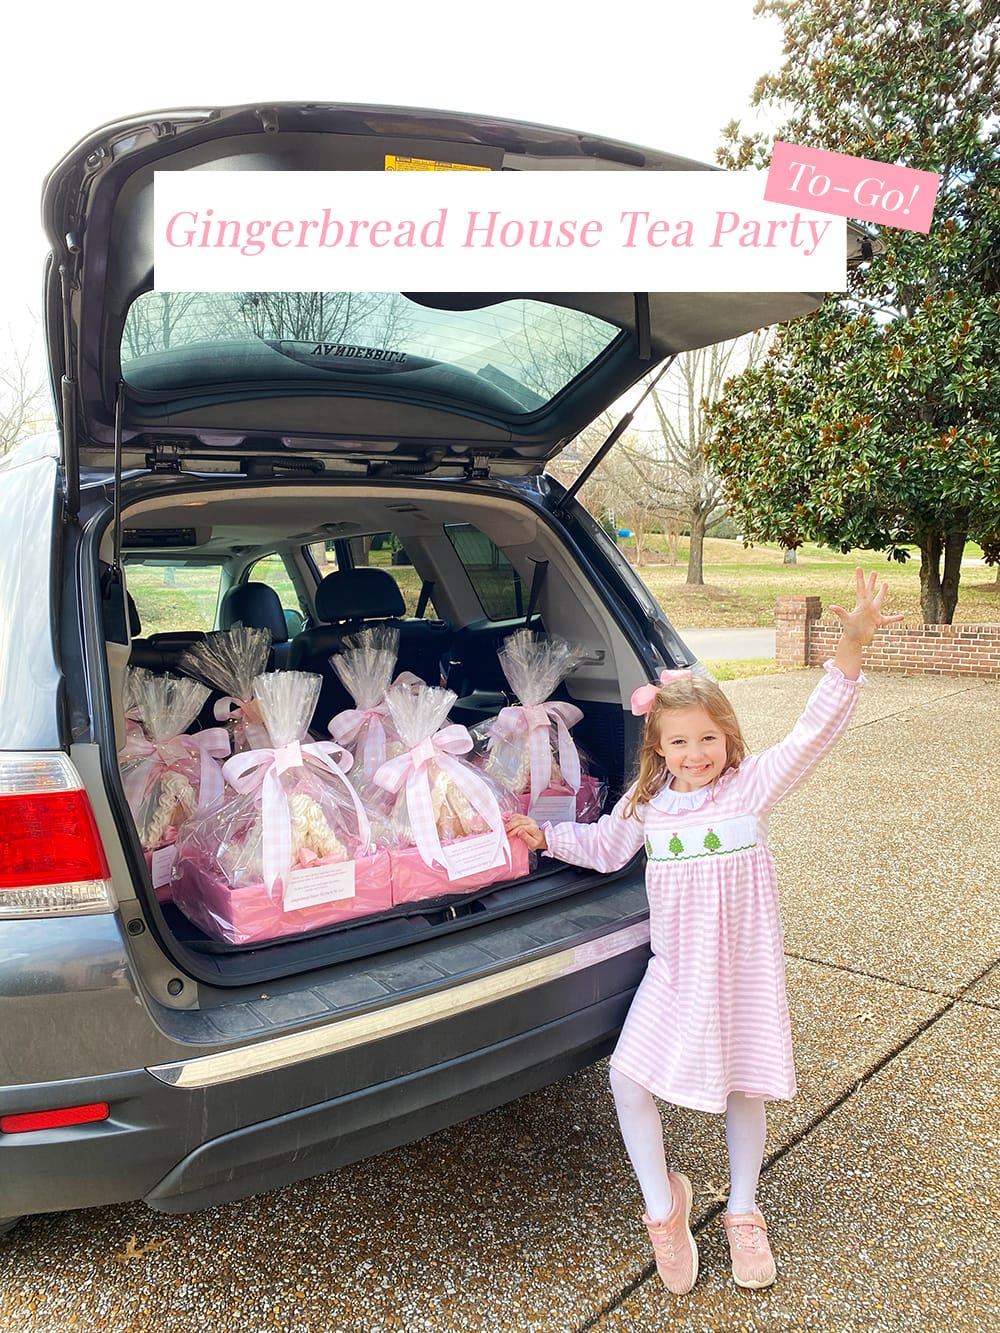 Gingerbread House Tea Party To-Go!